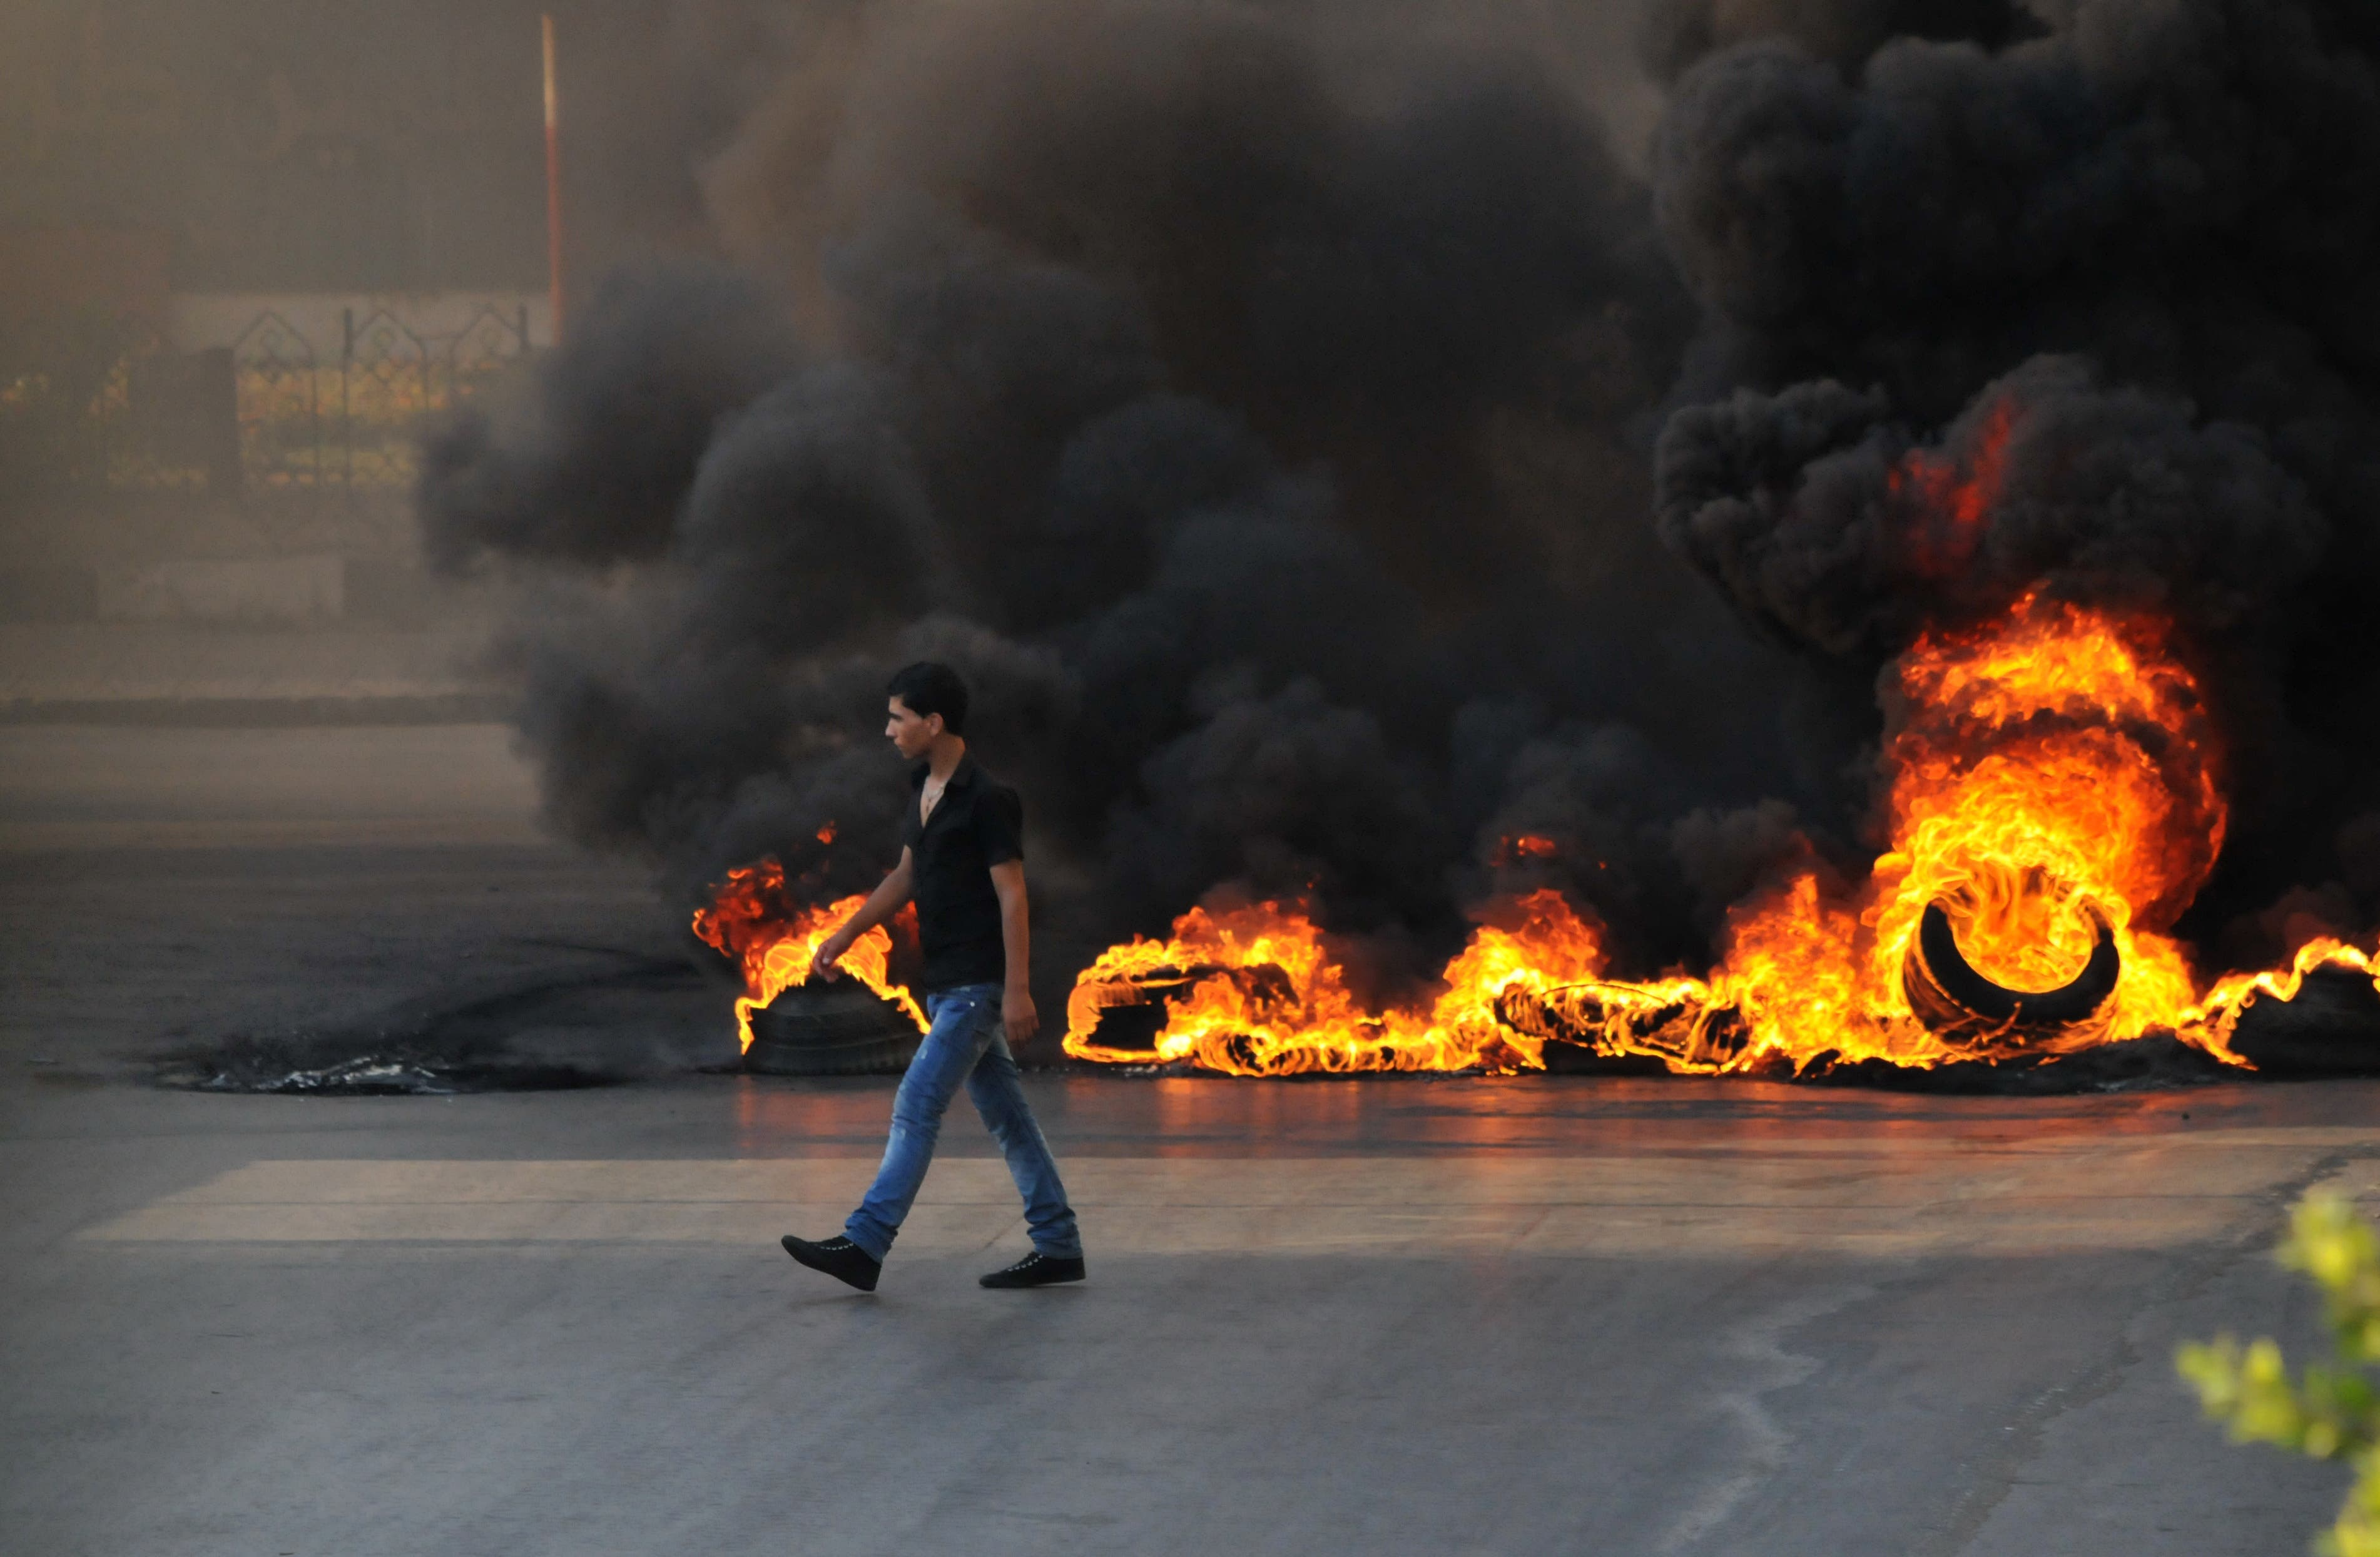 LEBANON, Tripoli : A youth walks past burning tires across a street in the northern city of Tripoli, on June 23, 2013, during protests in support of Sunni Muslim Sheikh Ahmad al-Assir whose supporters have clashed with the Lebanese army in the southern Lebanese city of Sidon. (Credit: AFP)